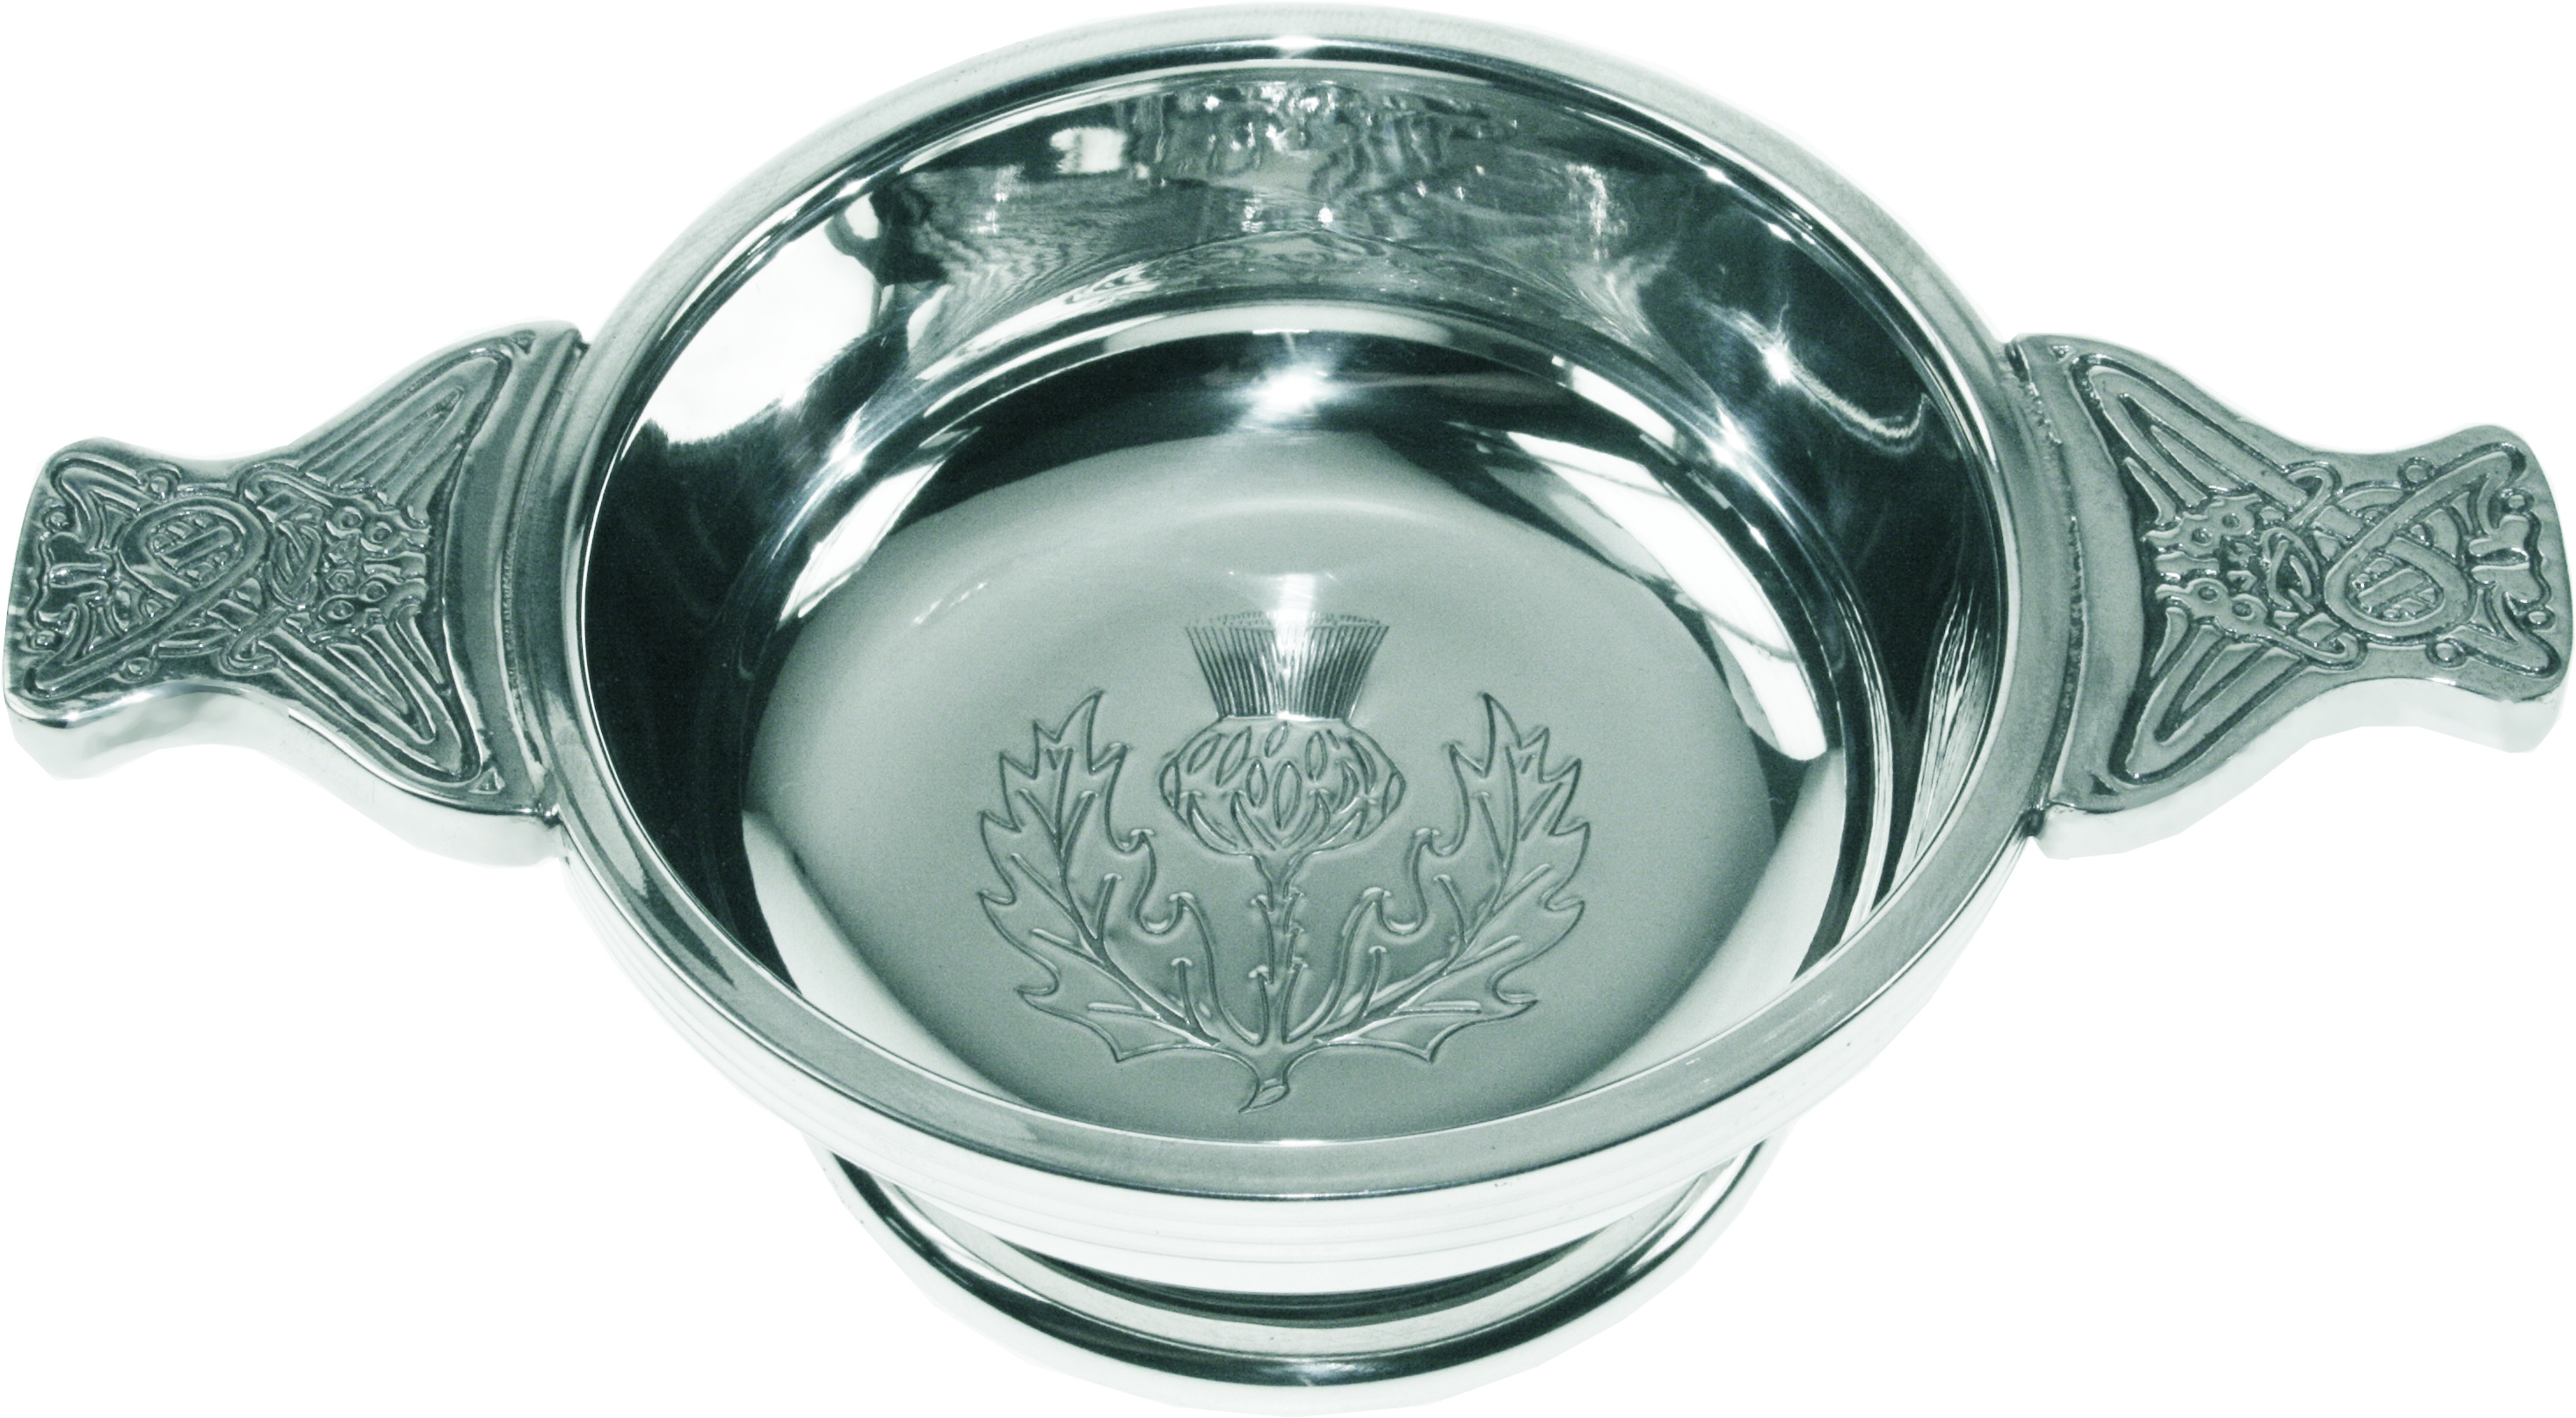 "Pewter Quaich Bowl with Thistle Engraving and Celtic Styled Handles 9cm (3.5"")"